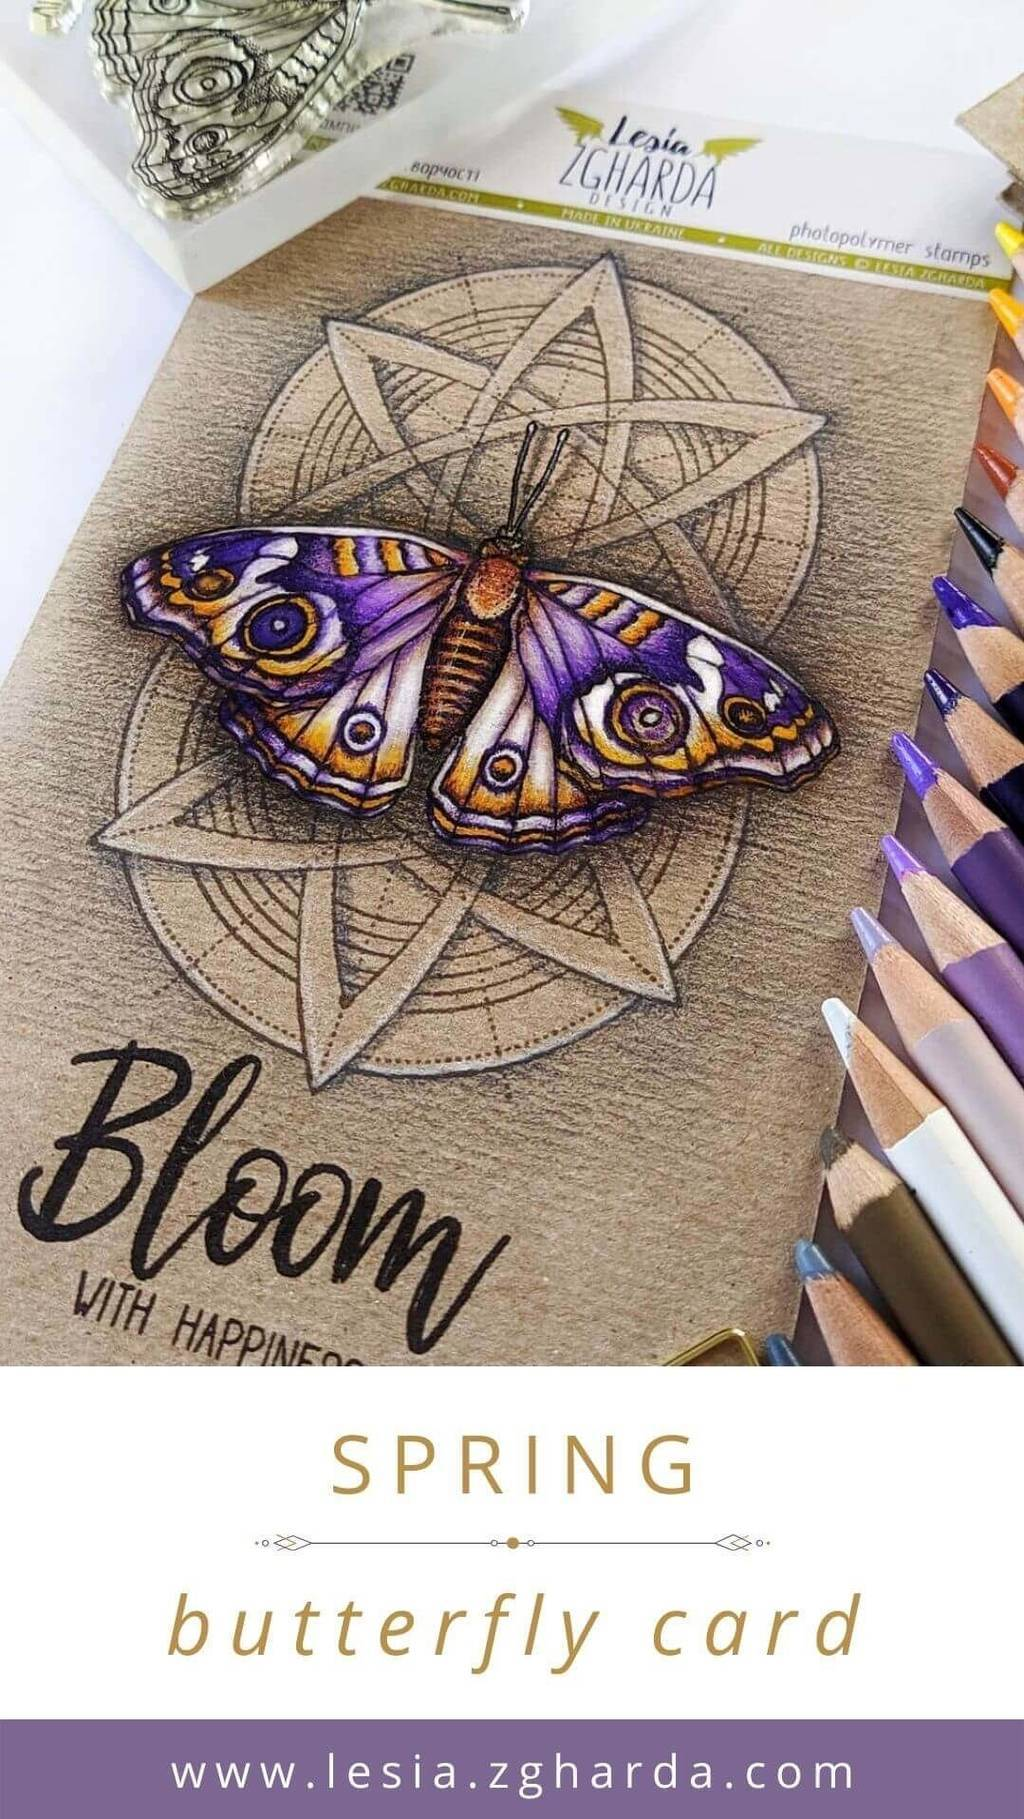 Spring butterfly card | Lesia Zgharda Stamps. The beautiful spring card to make with the butterfly stamp coloring with pencils, and geometric background stamp. End this card the sentiment stamps.